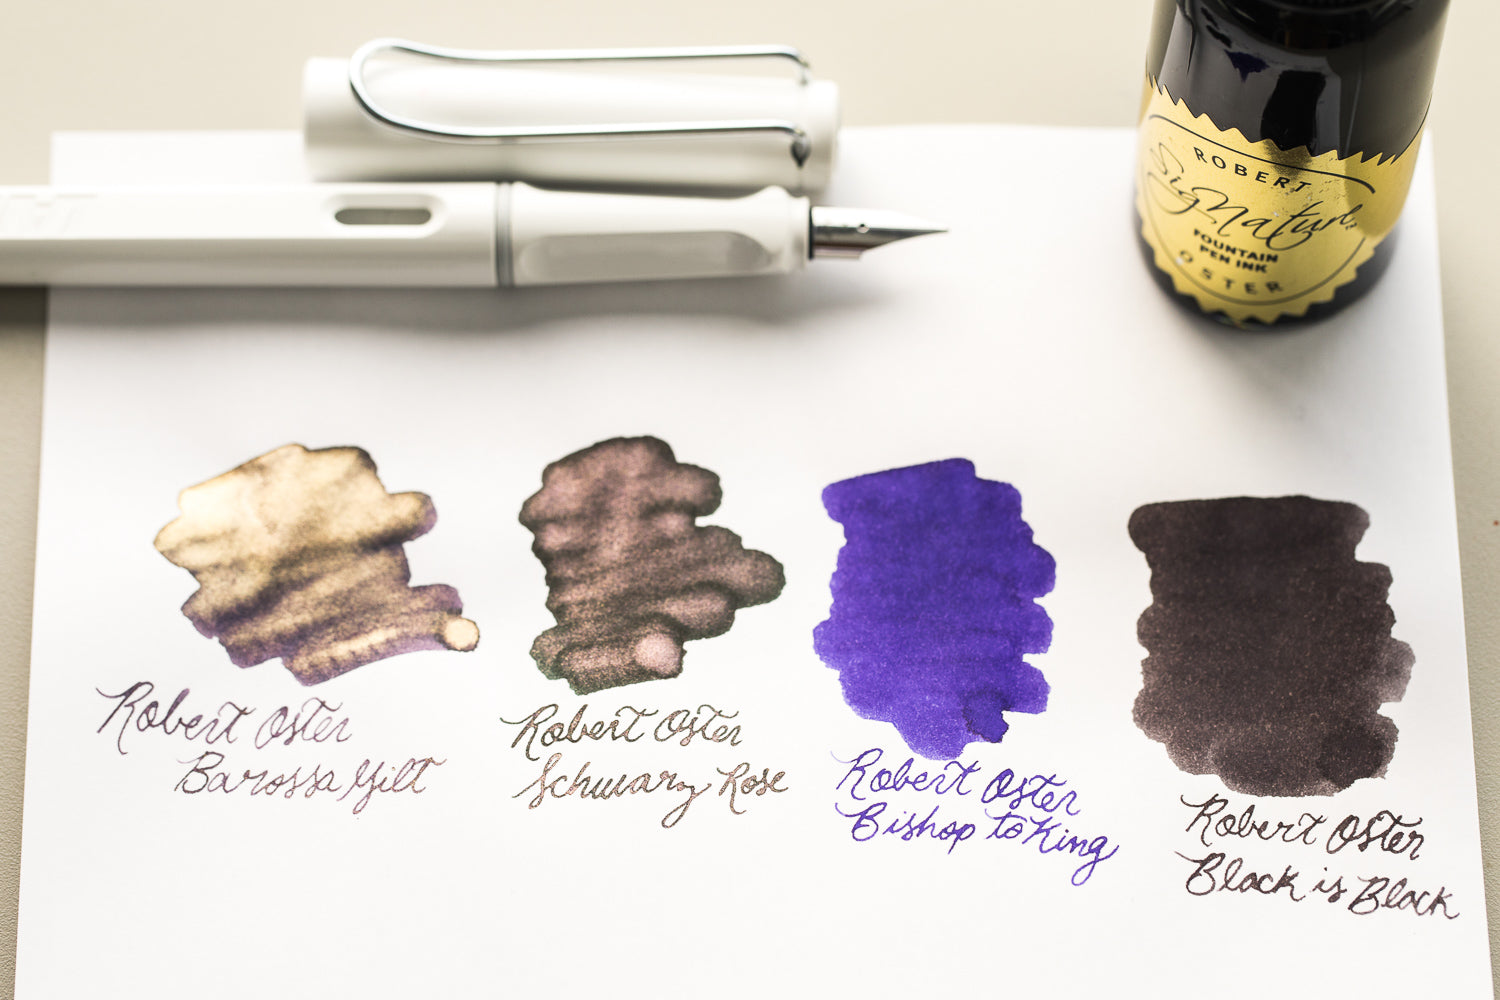 Robert Oster Barossa Gilt - 50ml Bottled Ink